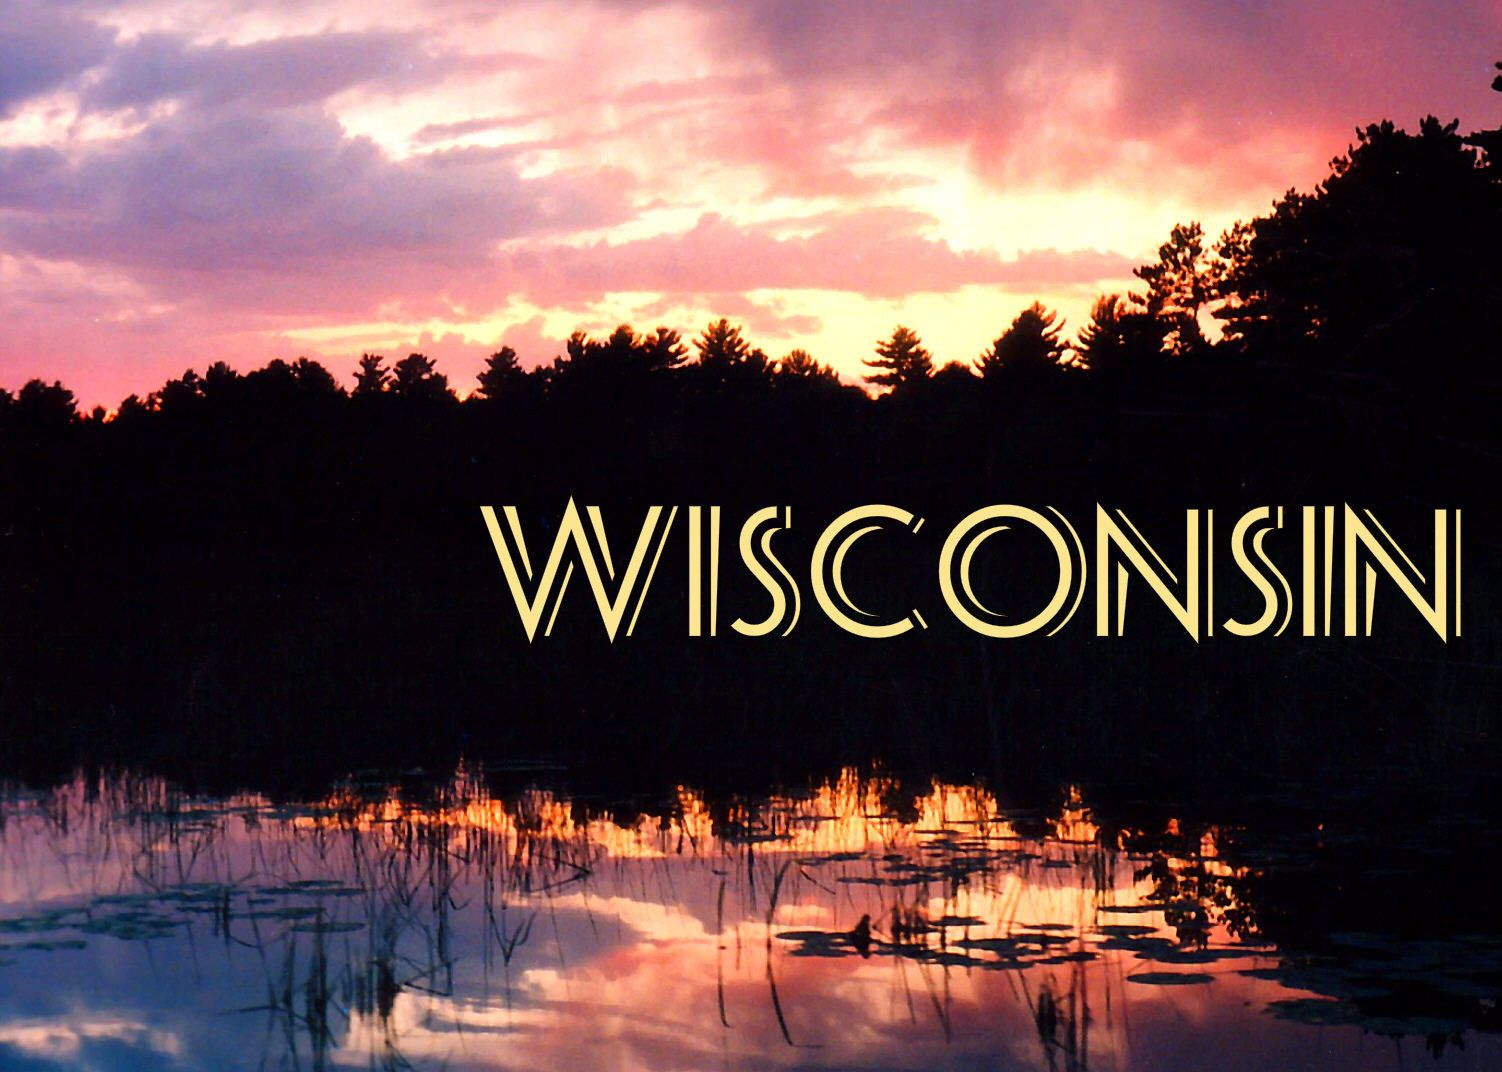 Resources for the #Wisconsin travel found here!